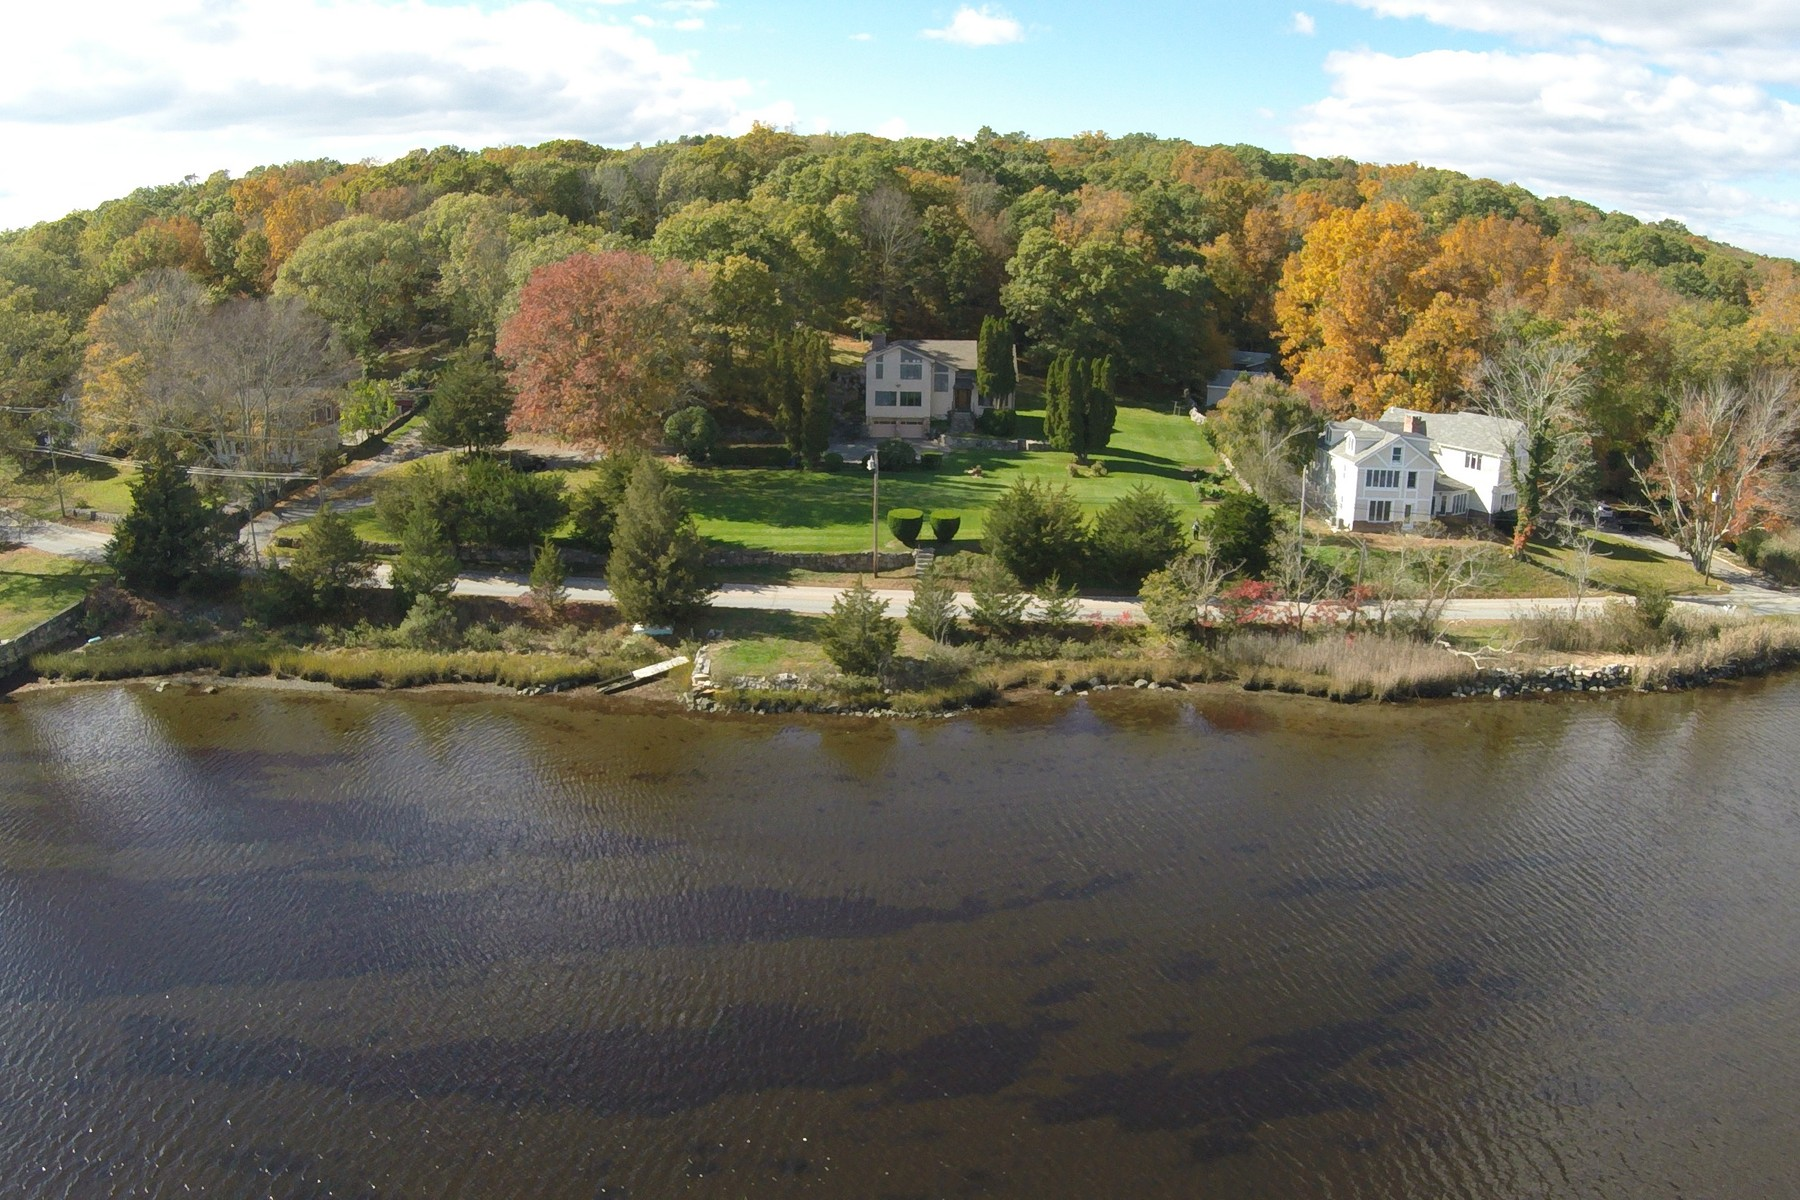 Casa Unifamiliar por un Venta en Beautiful River Views 743 River Rd Groton, Connecticut 06355 Estados Unidos